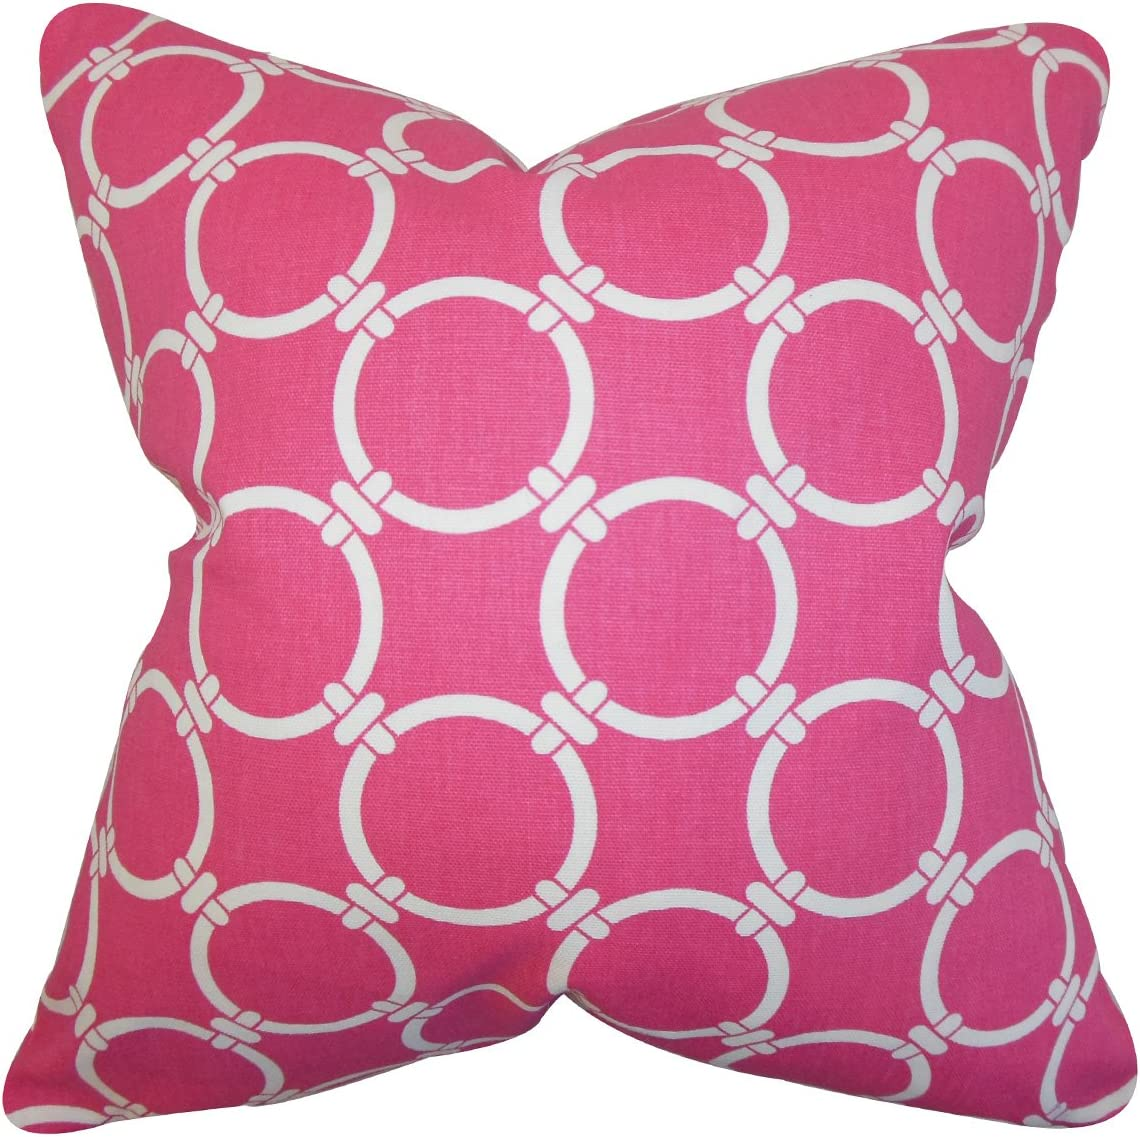 Amazon Com The Pillow Collection Betchet Geometric Bedding Sham Candy Pink King 20 X 36 Home Kitchen